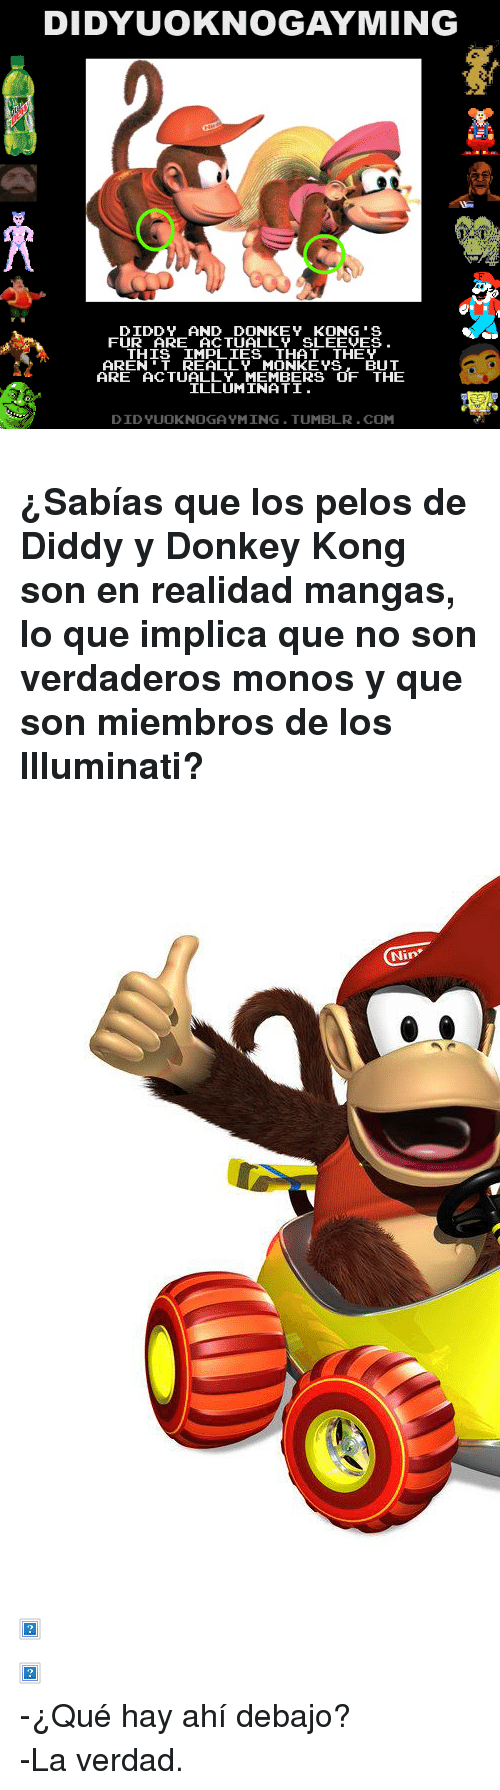 """Diddy Kong: DIDYUOKNOGAYMING  DIDDY AND DONKEY KONG'S  FUR ARE ACTUALLY SLEEVES  THIS IMPLIES THAT THEY  AREN'T REALLY MONKE YS. BUT  ARE ACTUALLY MEMBERS OF THE  ILLUMINATI  DIDYUOKNOGA YMING.TUMBLR.COM <h3>¿Sabías que los pelos de Diddy y Donkey Kong son en realidad mangas, lo que implica que no son verdaderos monos y que son miembros de los Illuminati?</h3> <p><img alt="""""""" src=""""http://images.wikia.com/donkeykong/images/archive/d/df/20110909224759!DKRDS_Diddy_Kong.jpg""""/></p>  <p><img alt="""""""" src=""""http://media.animevice.com/uploads/1/15812/448751-diddy_kong__mario_super_sluggers_.jpg""""/></p>  <p><img alt="""""""" src=""""http://www.thetanooki.com/wp-content/uploads/2010/11/donkey_kong.jpg""""/></p> <p>-¿Qué hay ahí debajo?</p> <p>-La verdad.</p>"""